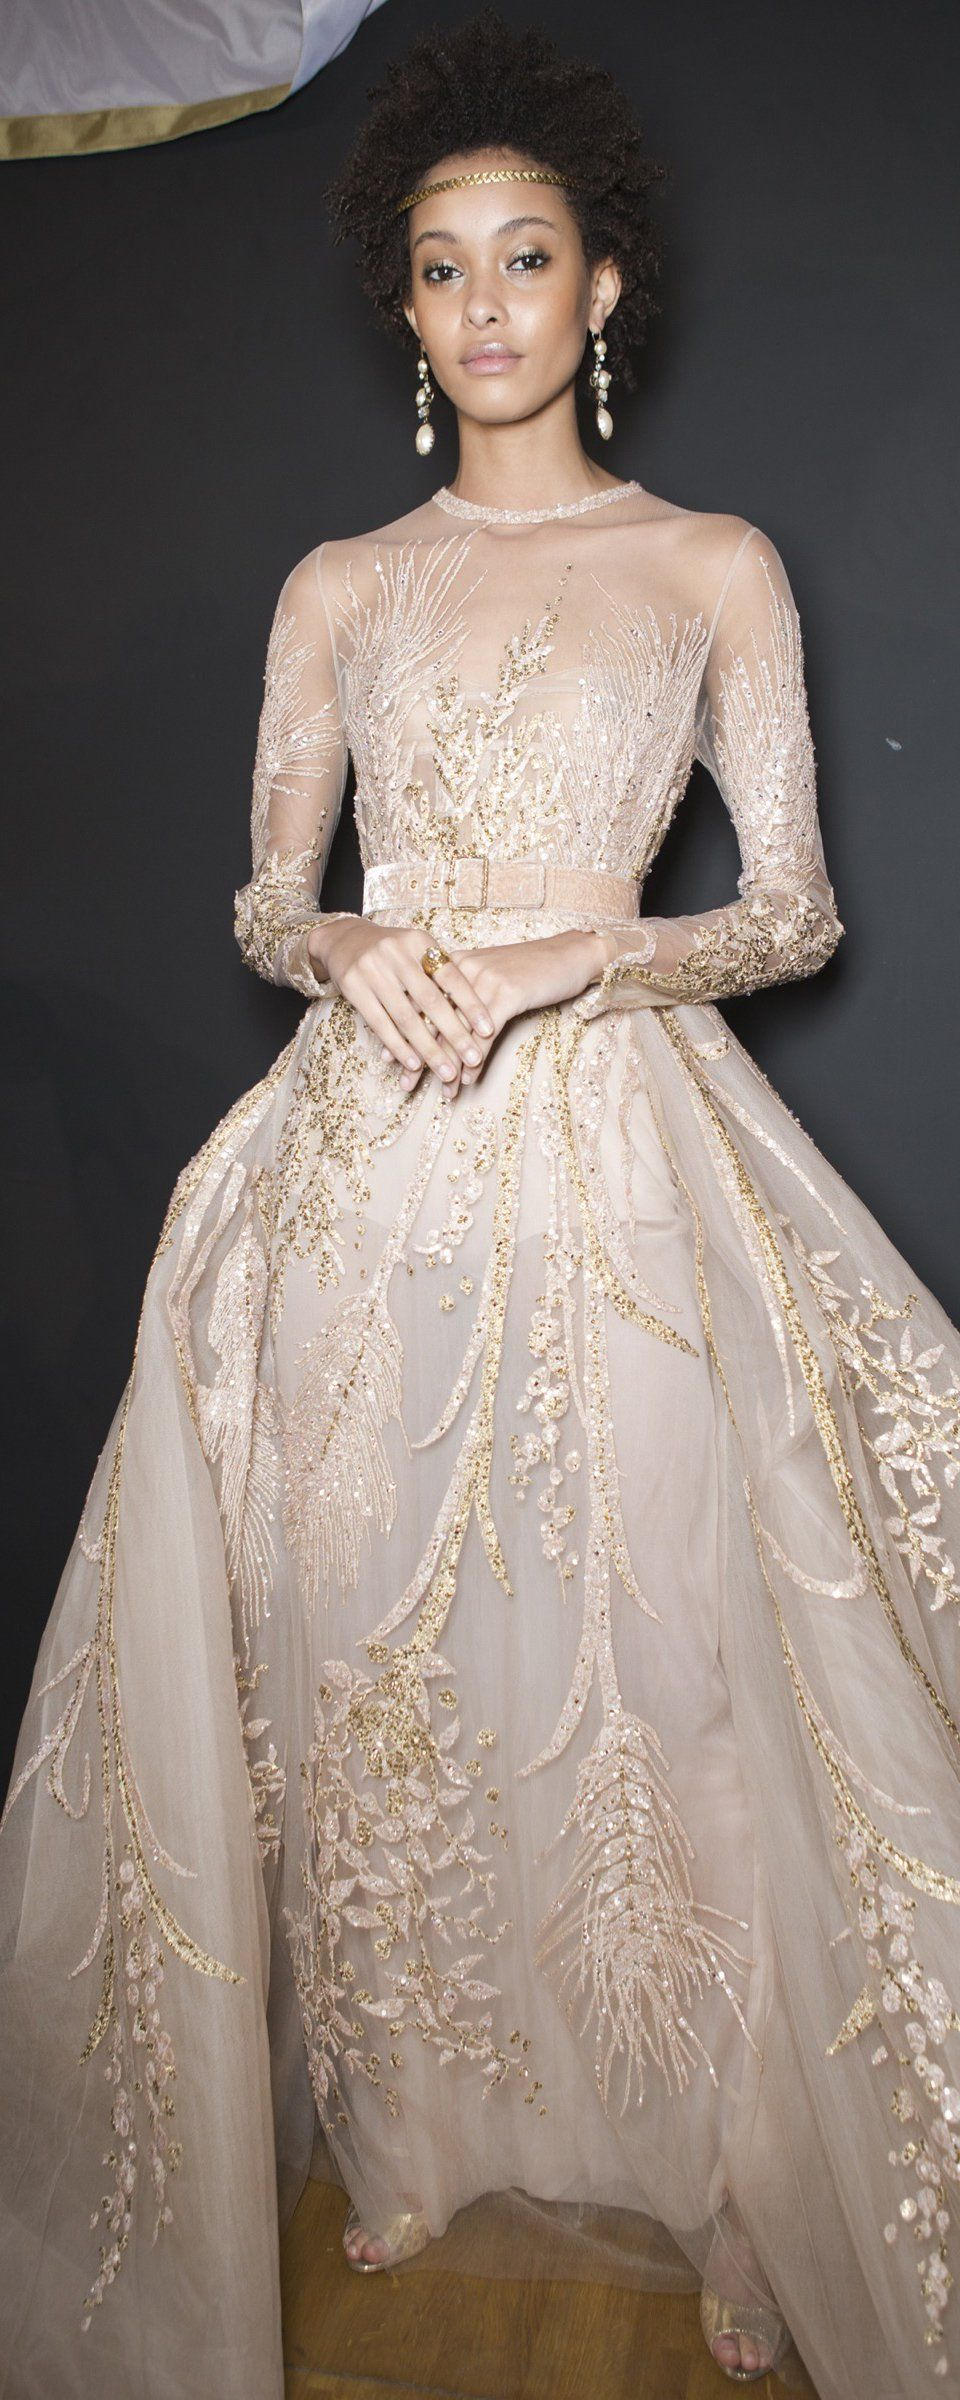 Elie saab fallwinter couture elie saab fall winter